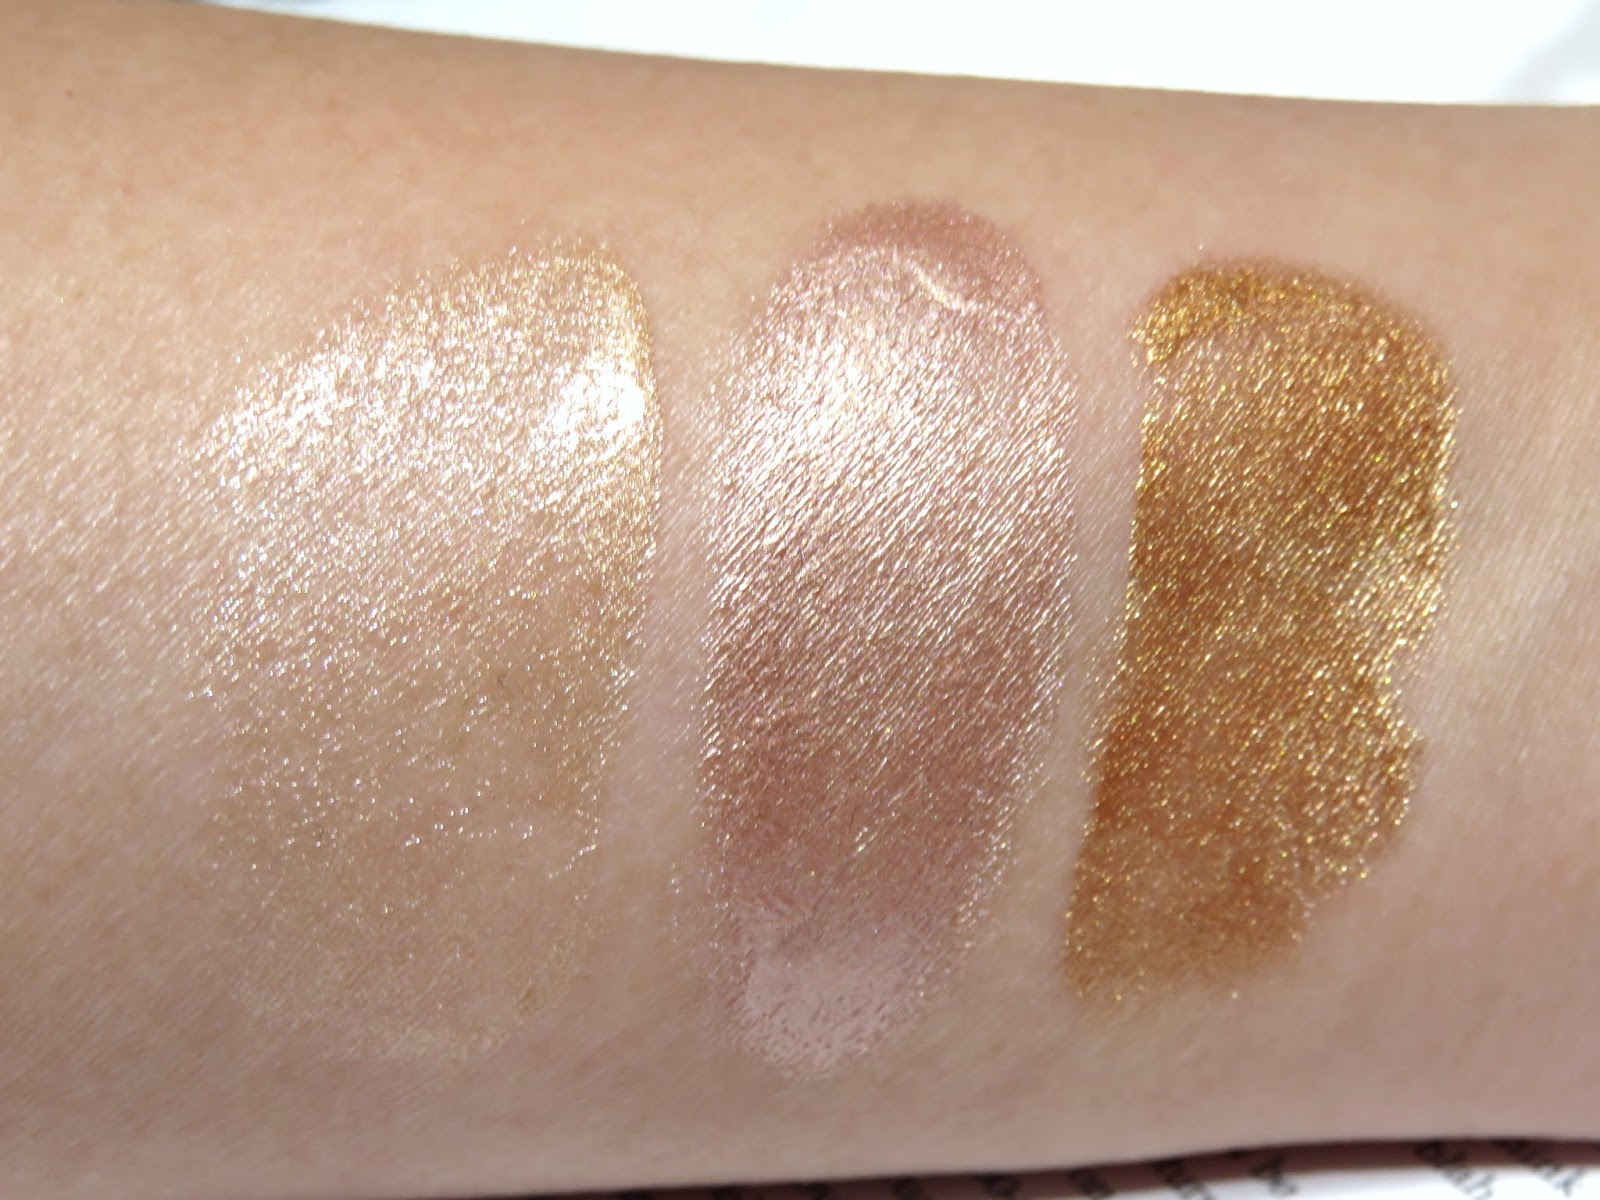 Bali Body Highlighter Sticks Swatches